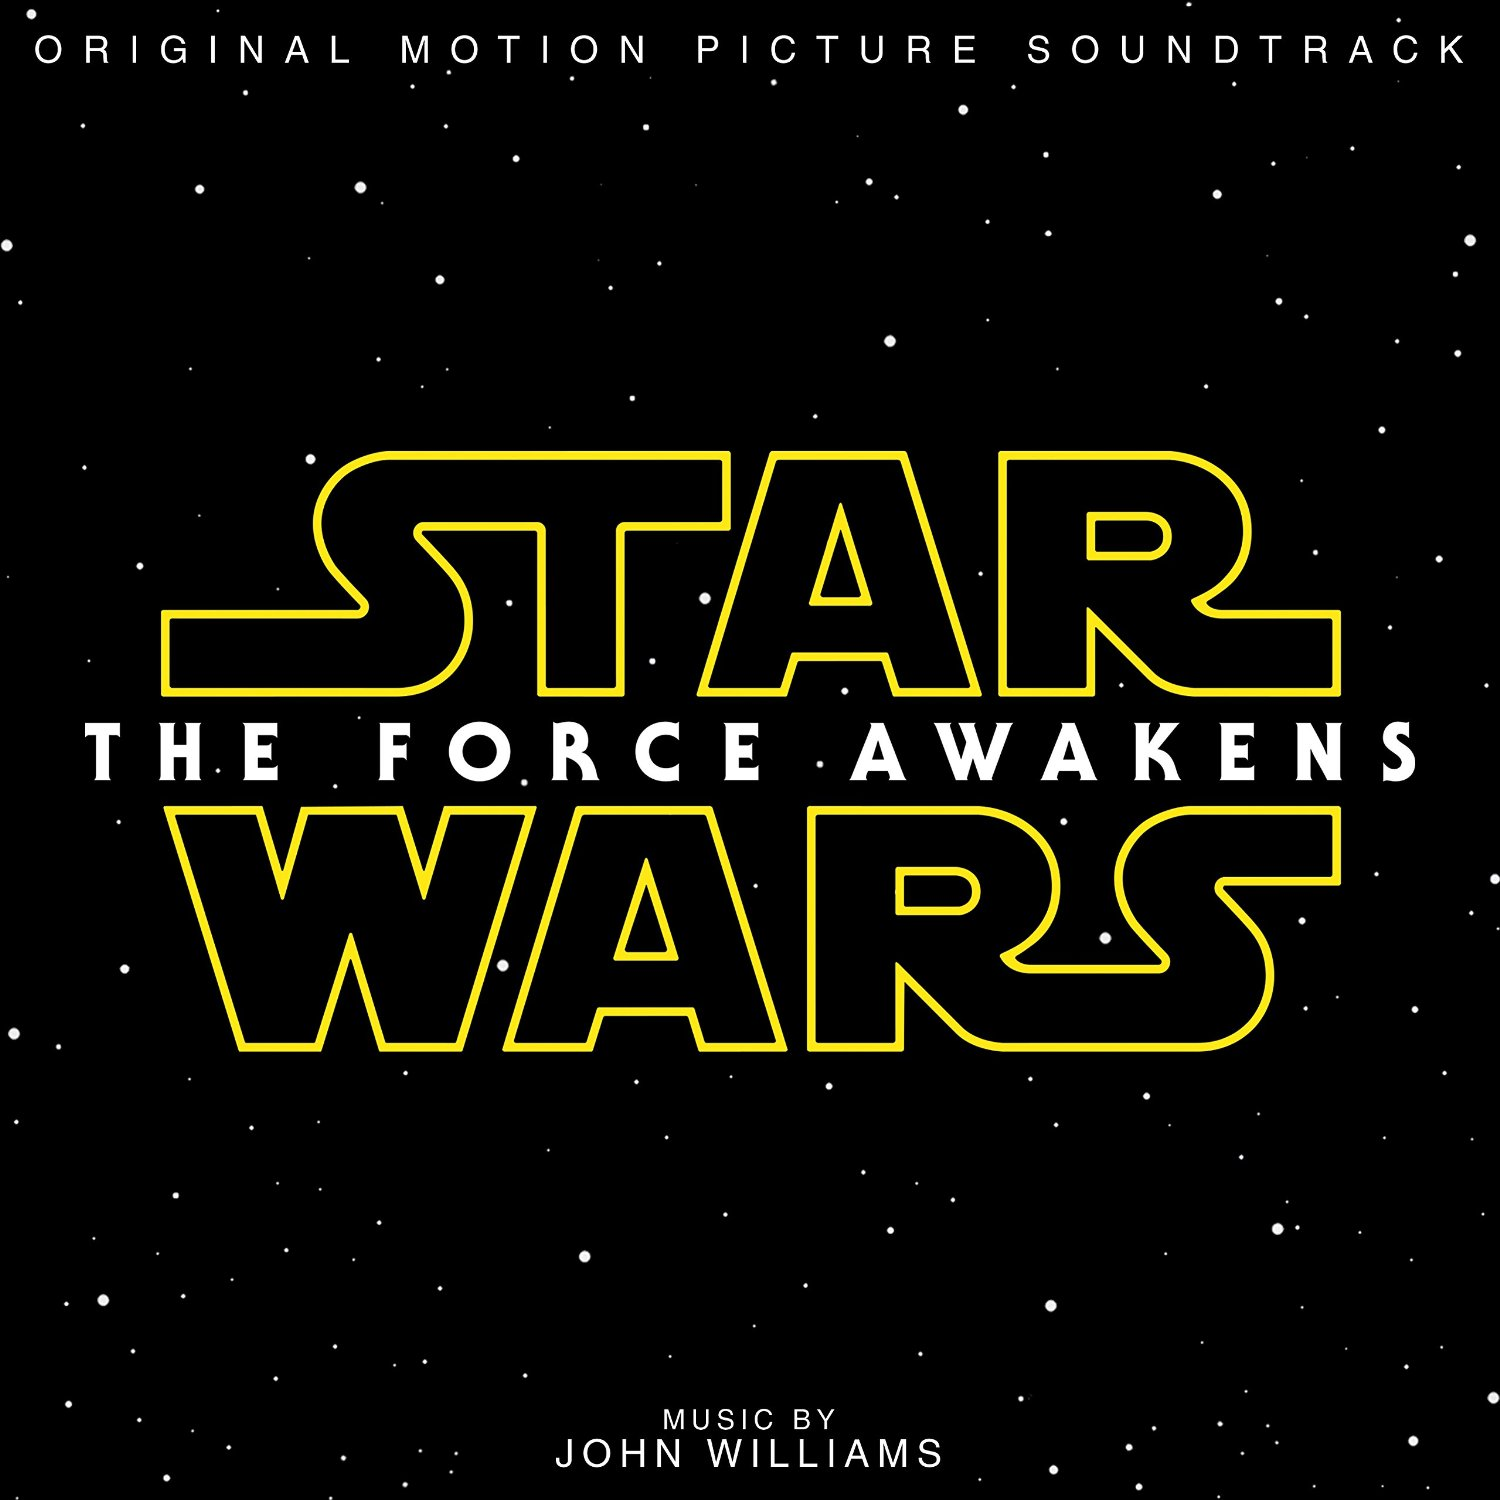 Star Wars Episode VII The Force Awakens-27Novembro2015